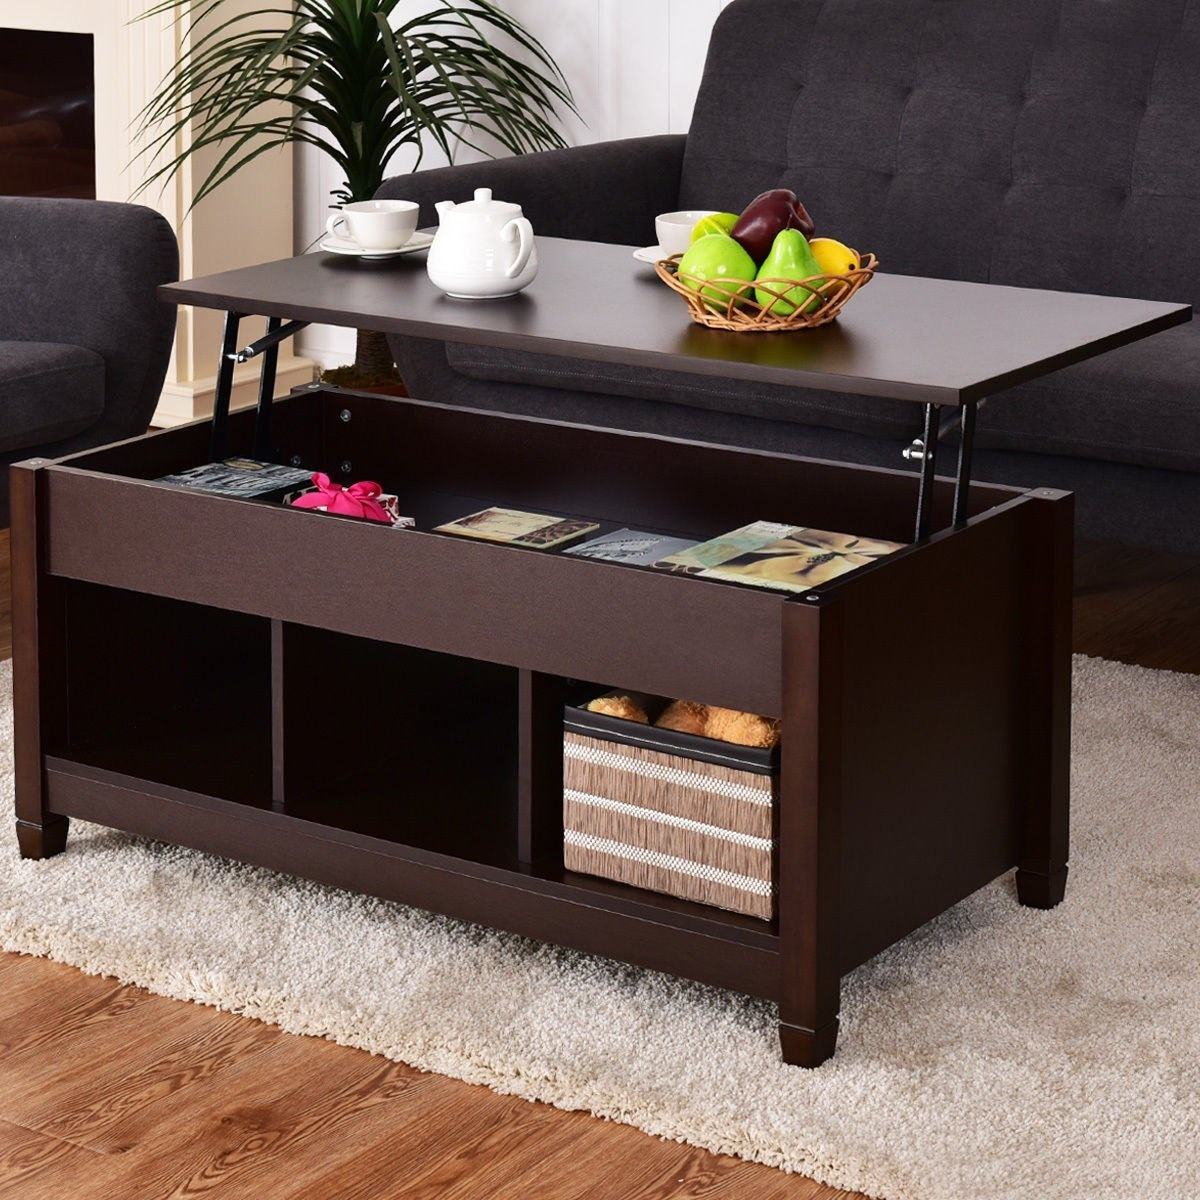 Sensational Lift Top Coffee Table Melbourne Andrewgaddart Wooden Chair Designs For Living Room Andrewgaddartcom